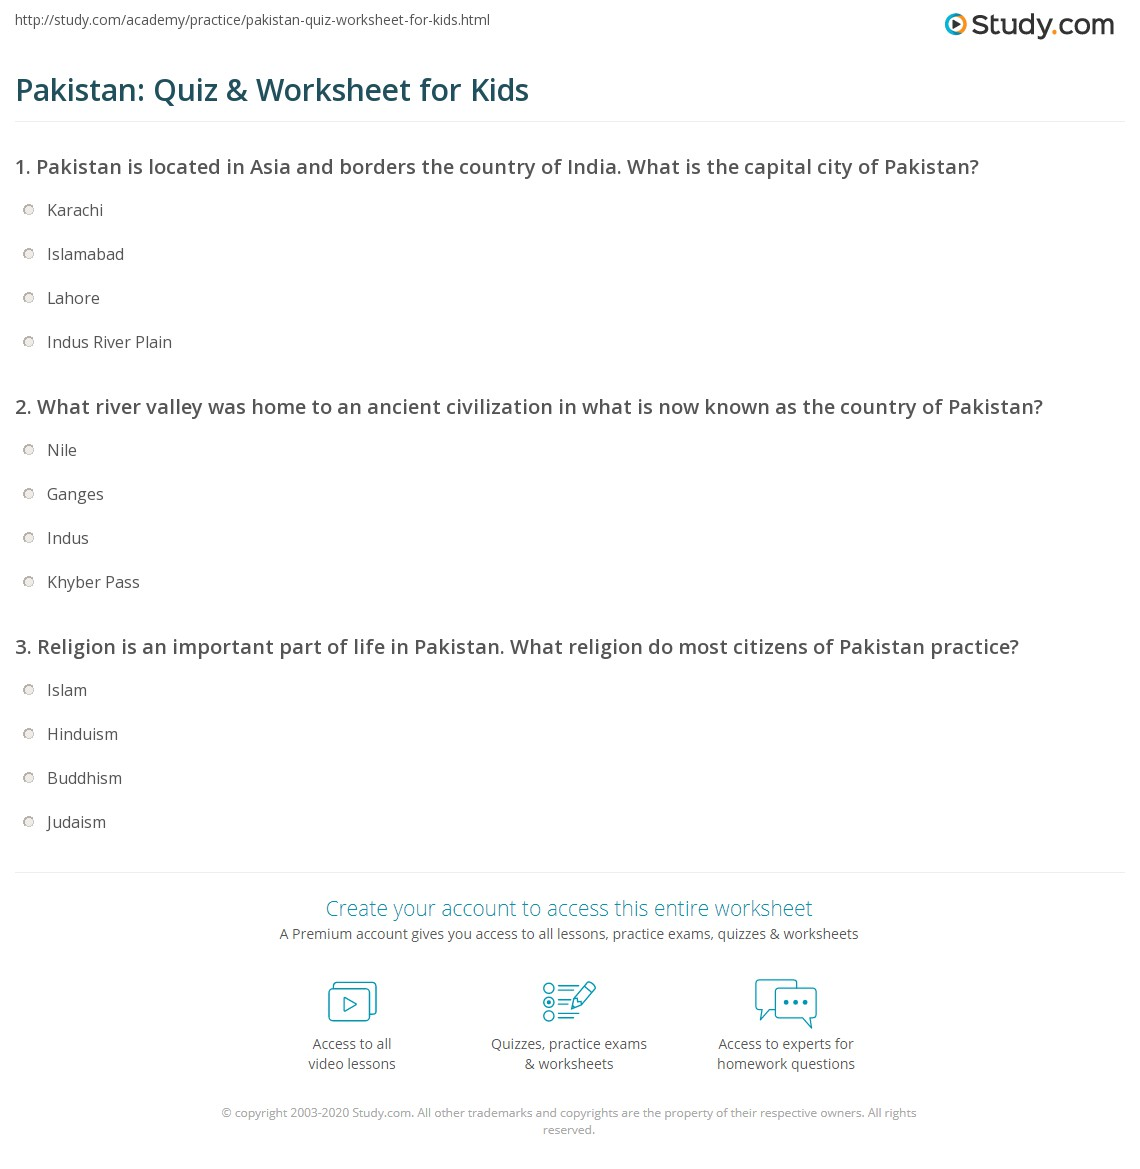 Pakistan Quiz Worksheet For Kids Study